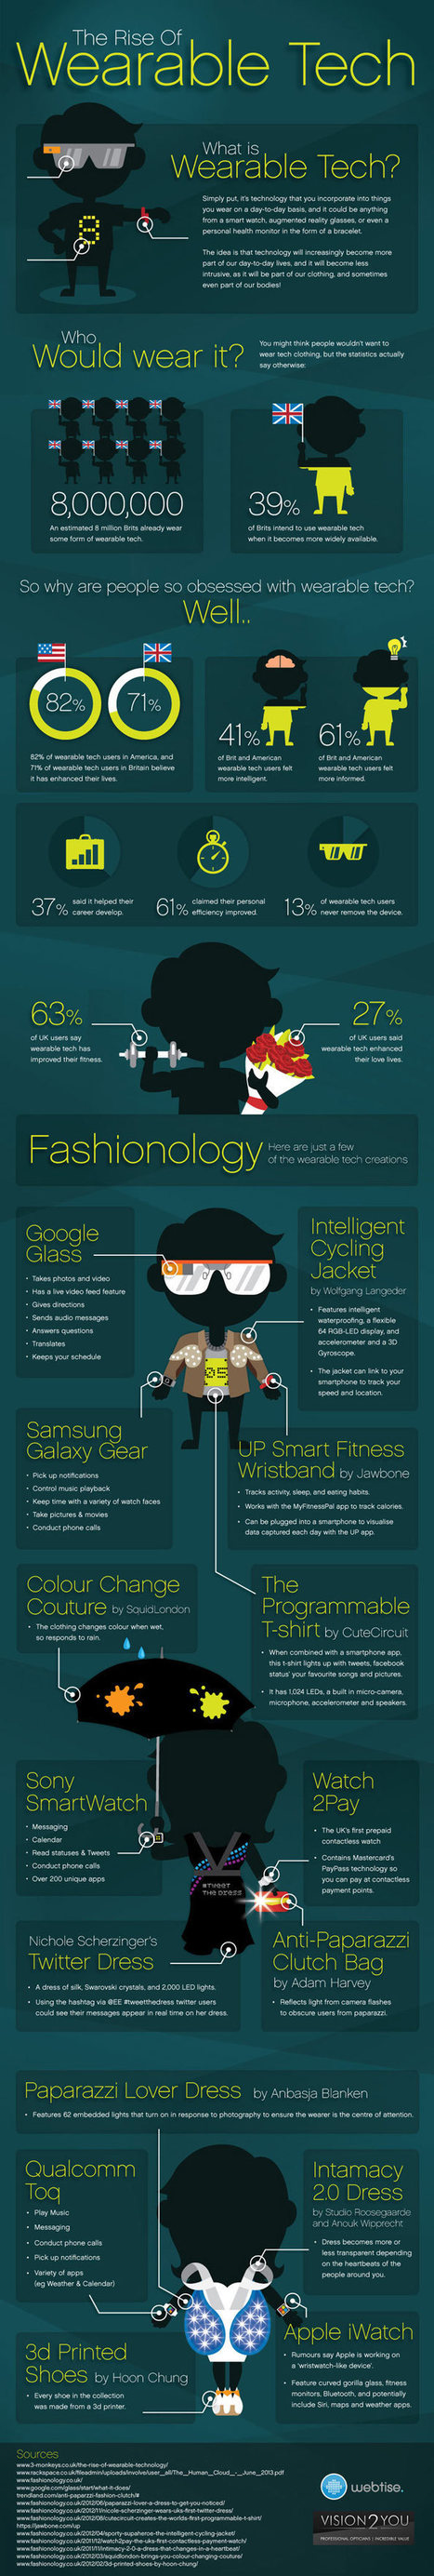 The rise of wearable technology – infographic | Social Media | Scoop.it